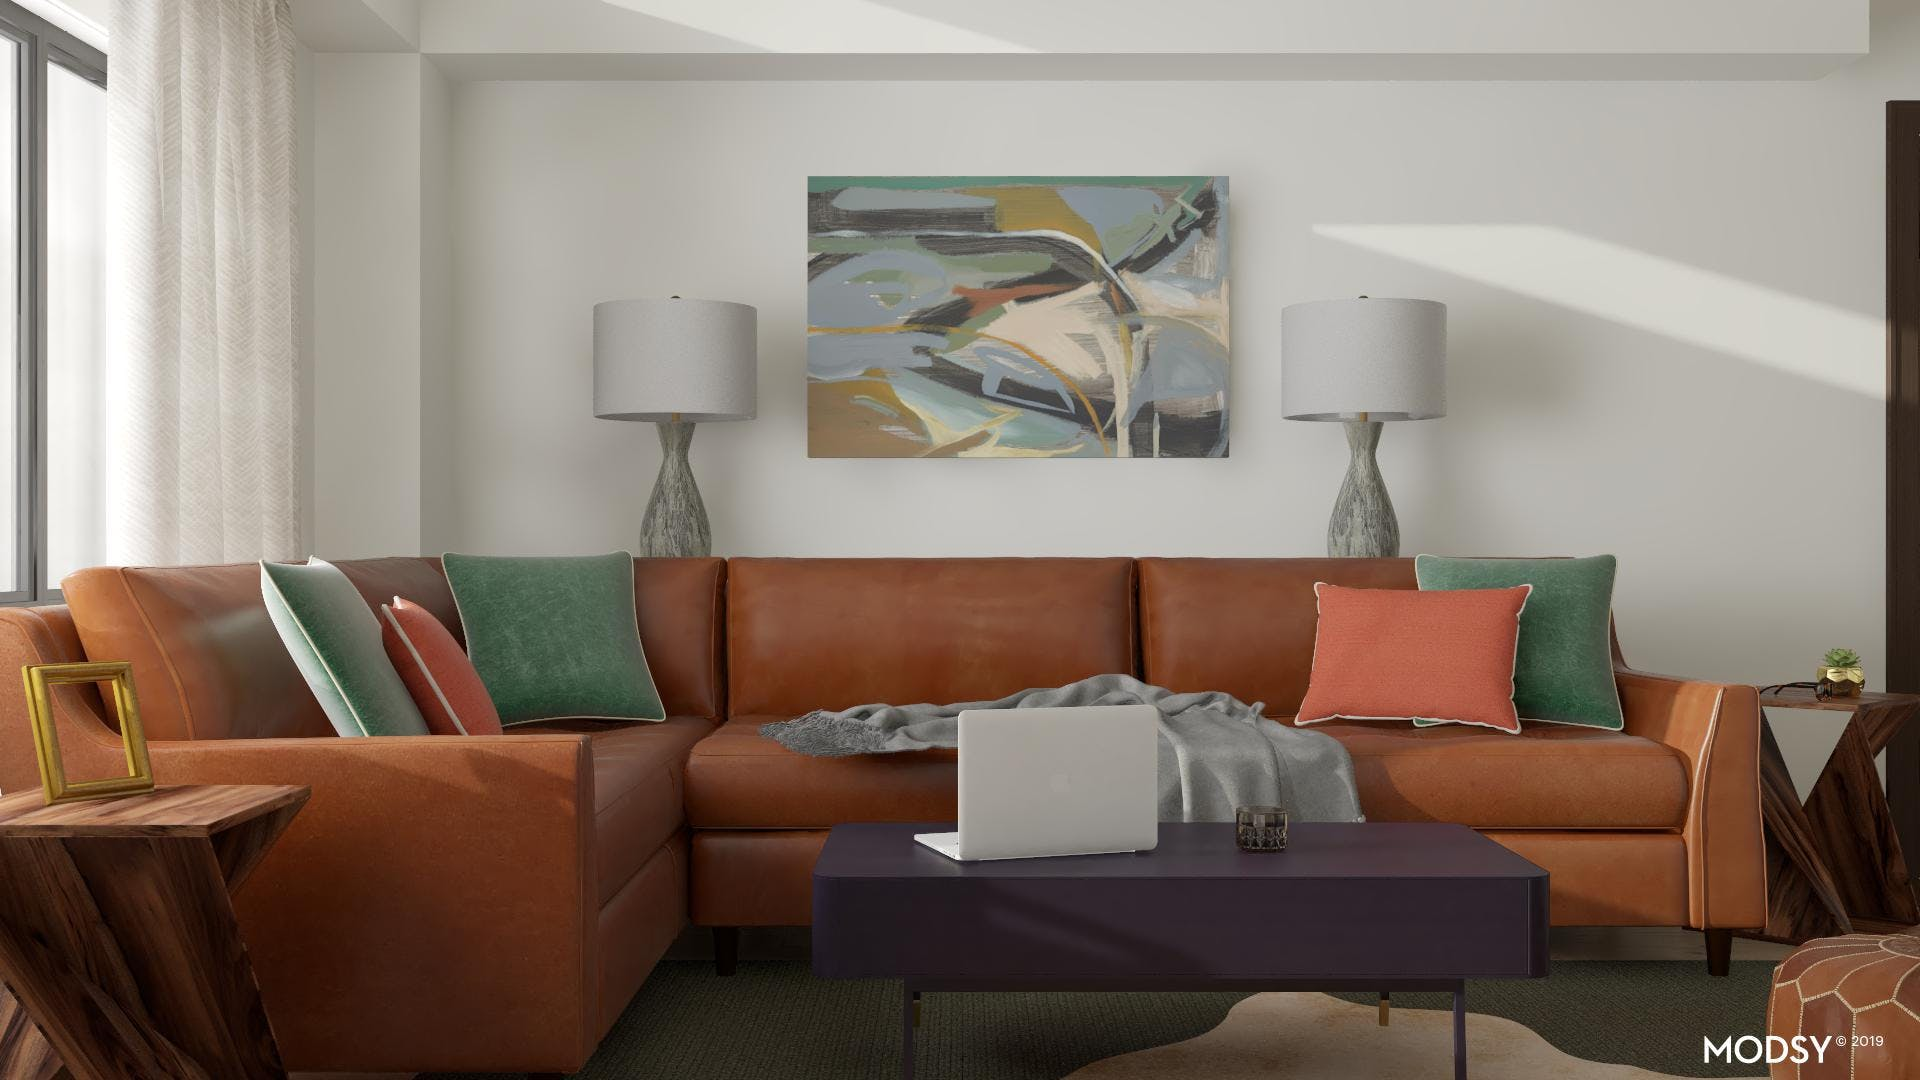 Tying Your Space Together With Wall Art